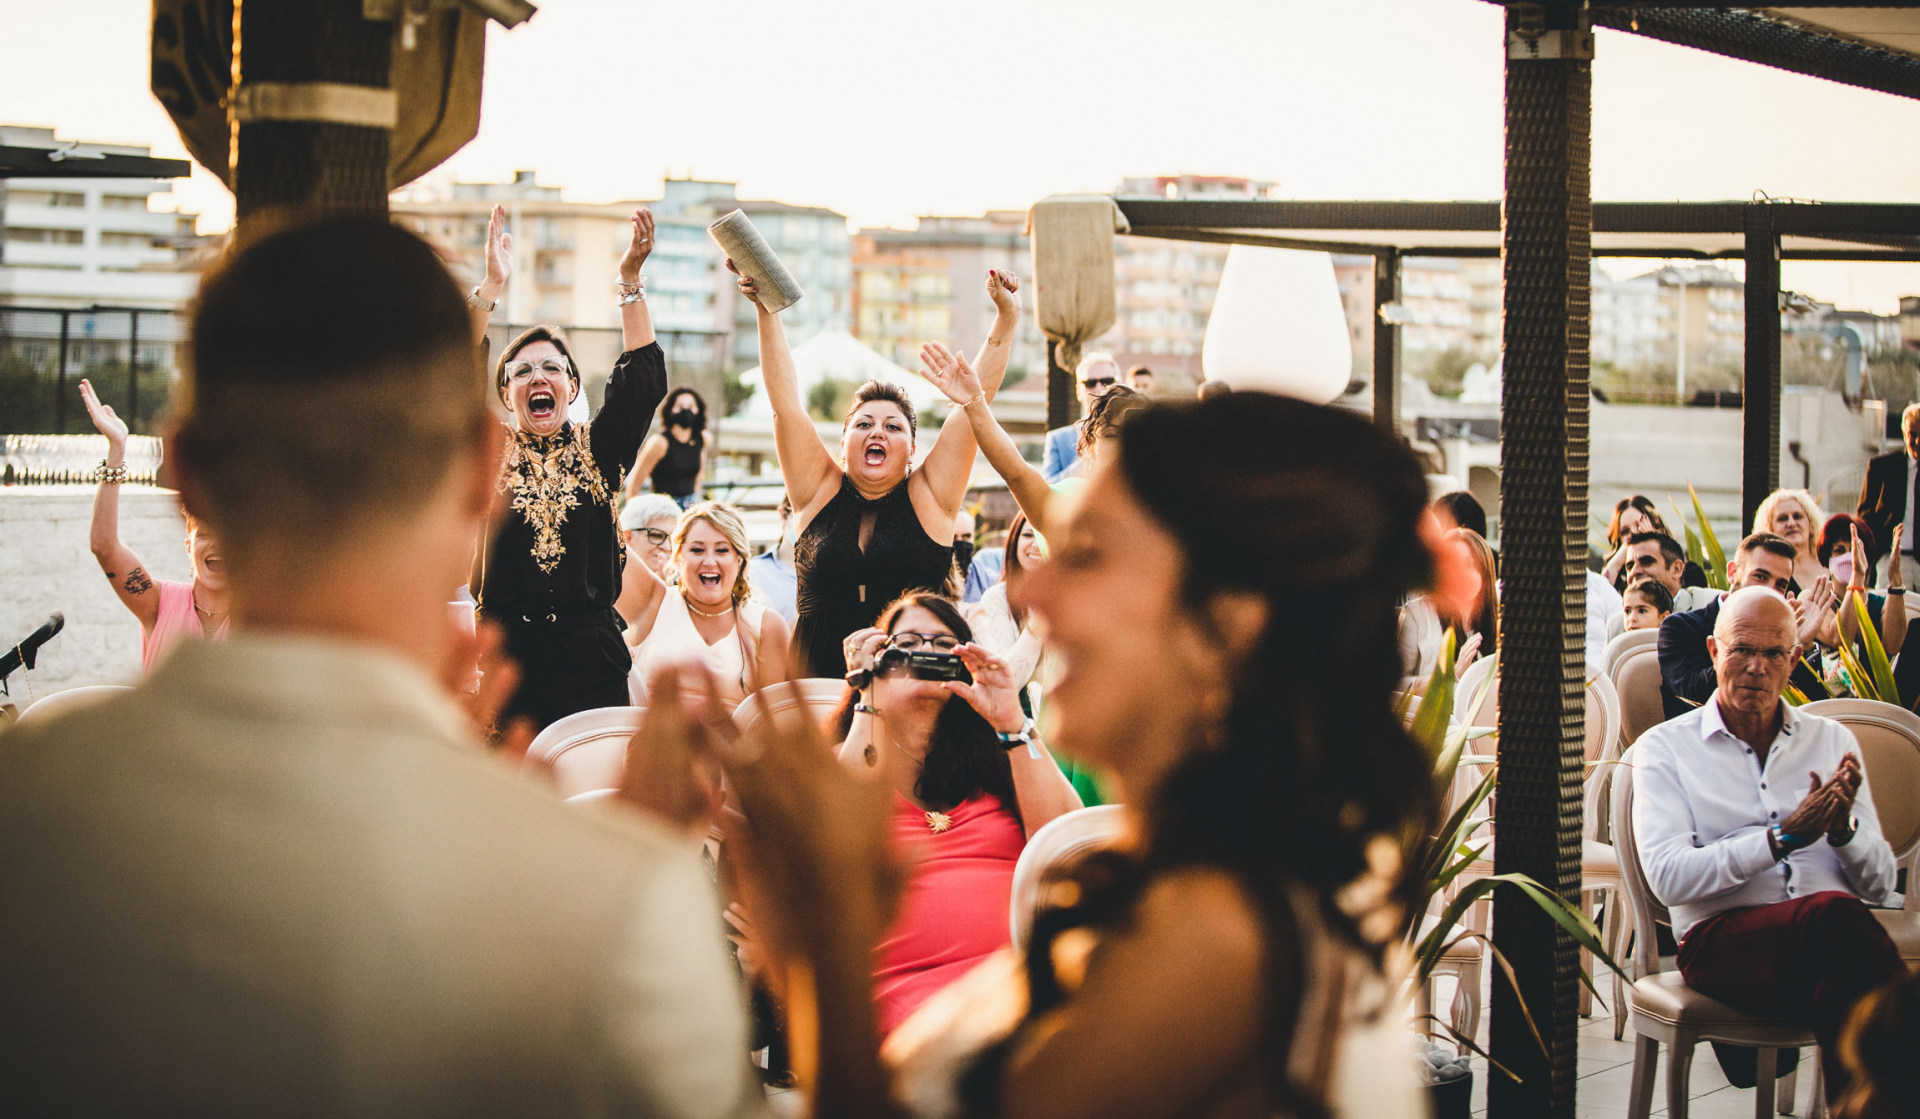 Outdoor Wedding Photographer of Venice | Guests are elated by the fact that the bride and groom are now officially husband and wife